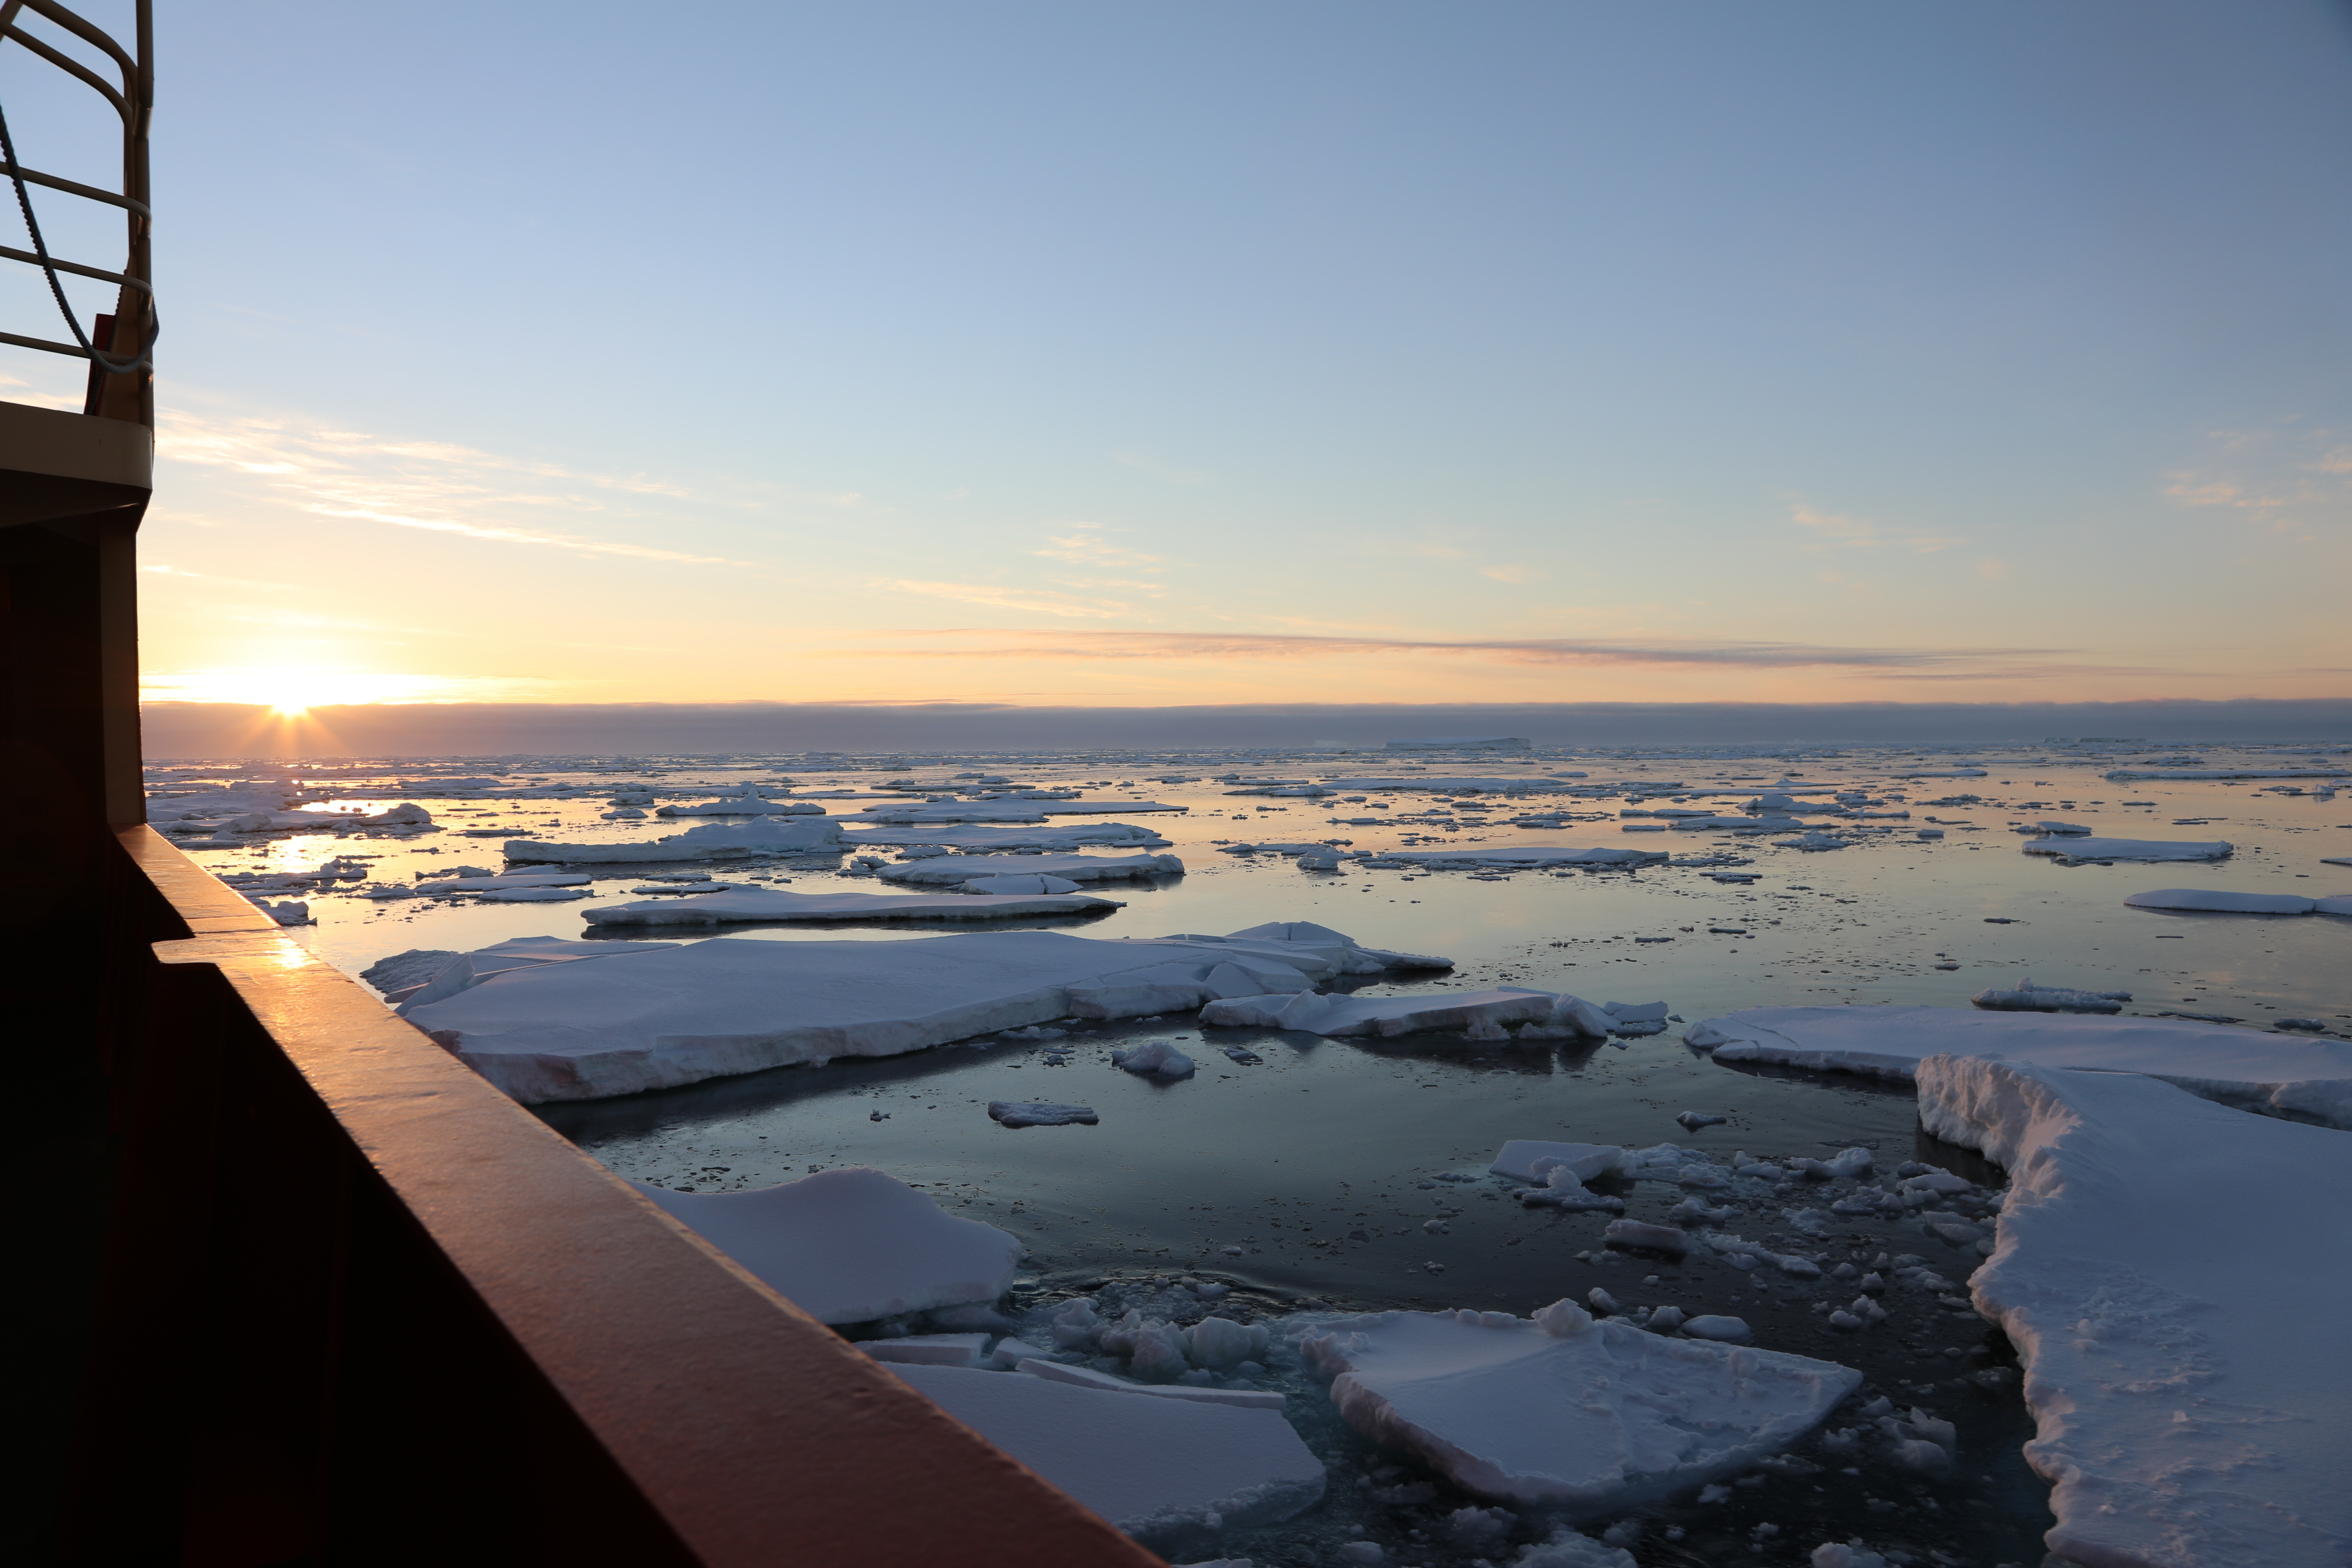 Sea ice viewed from the ship